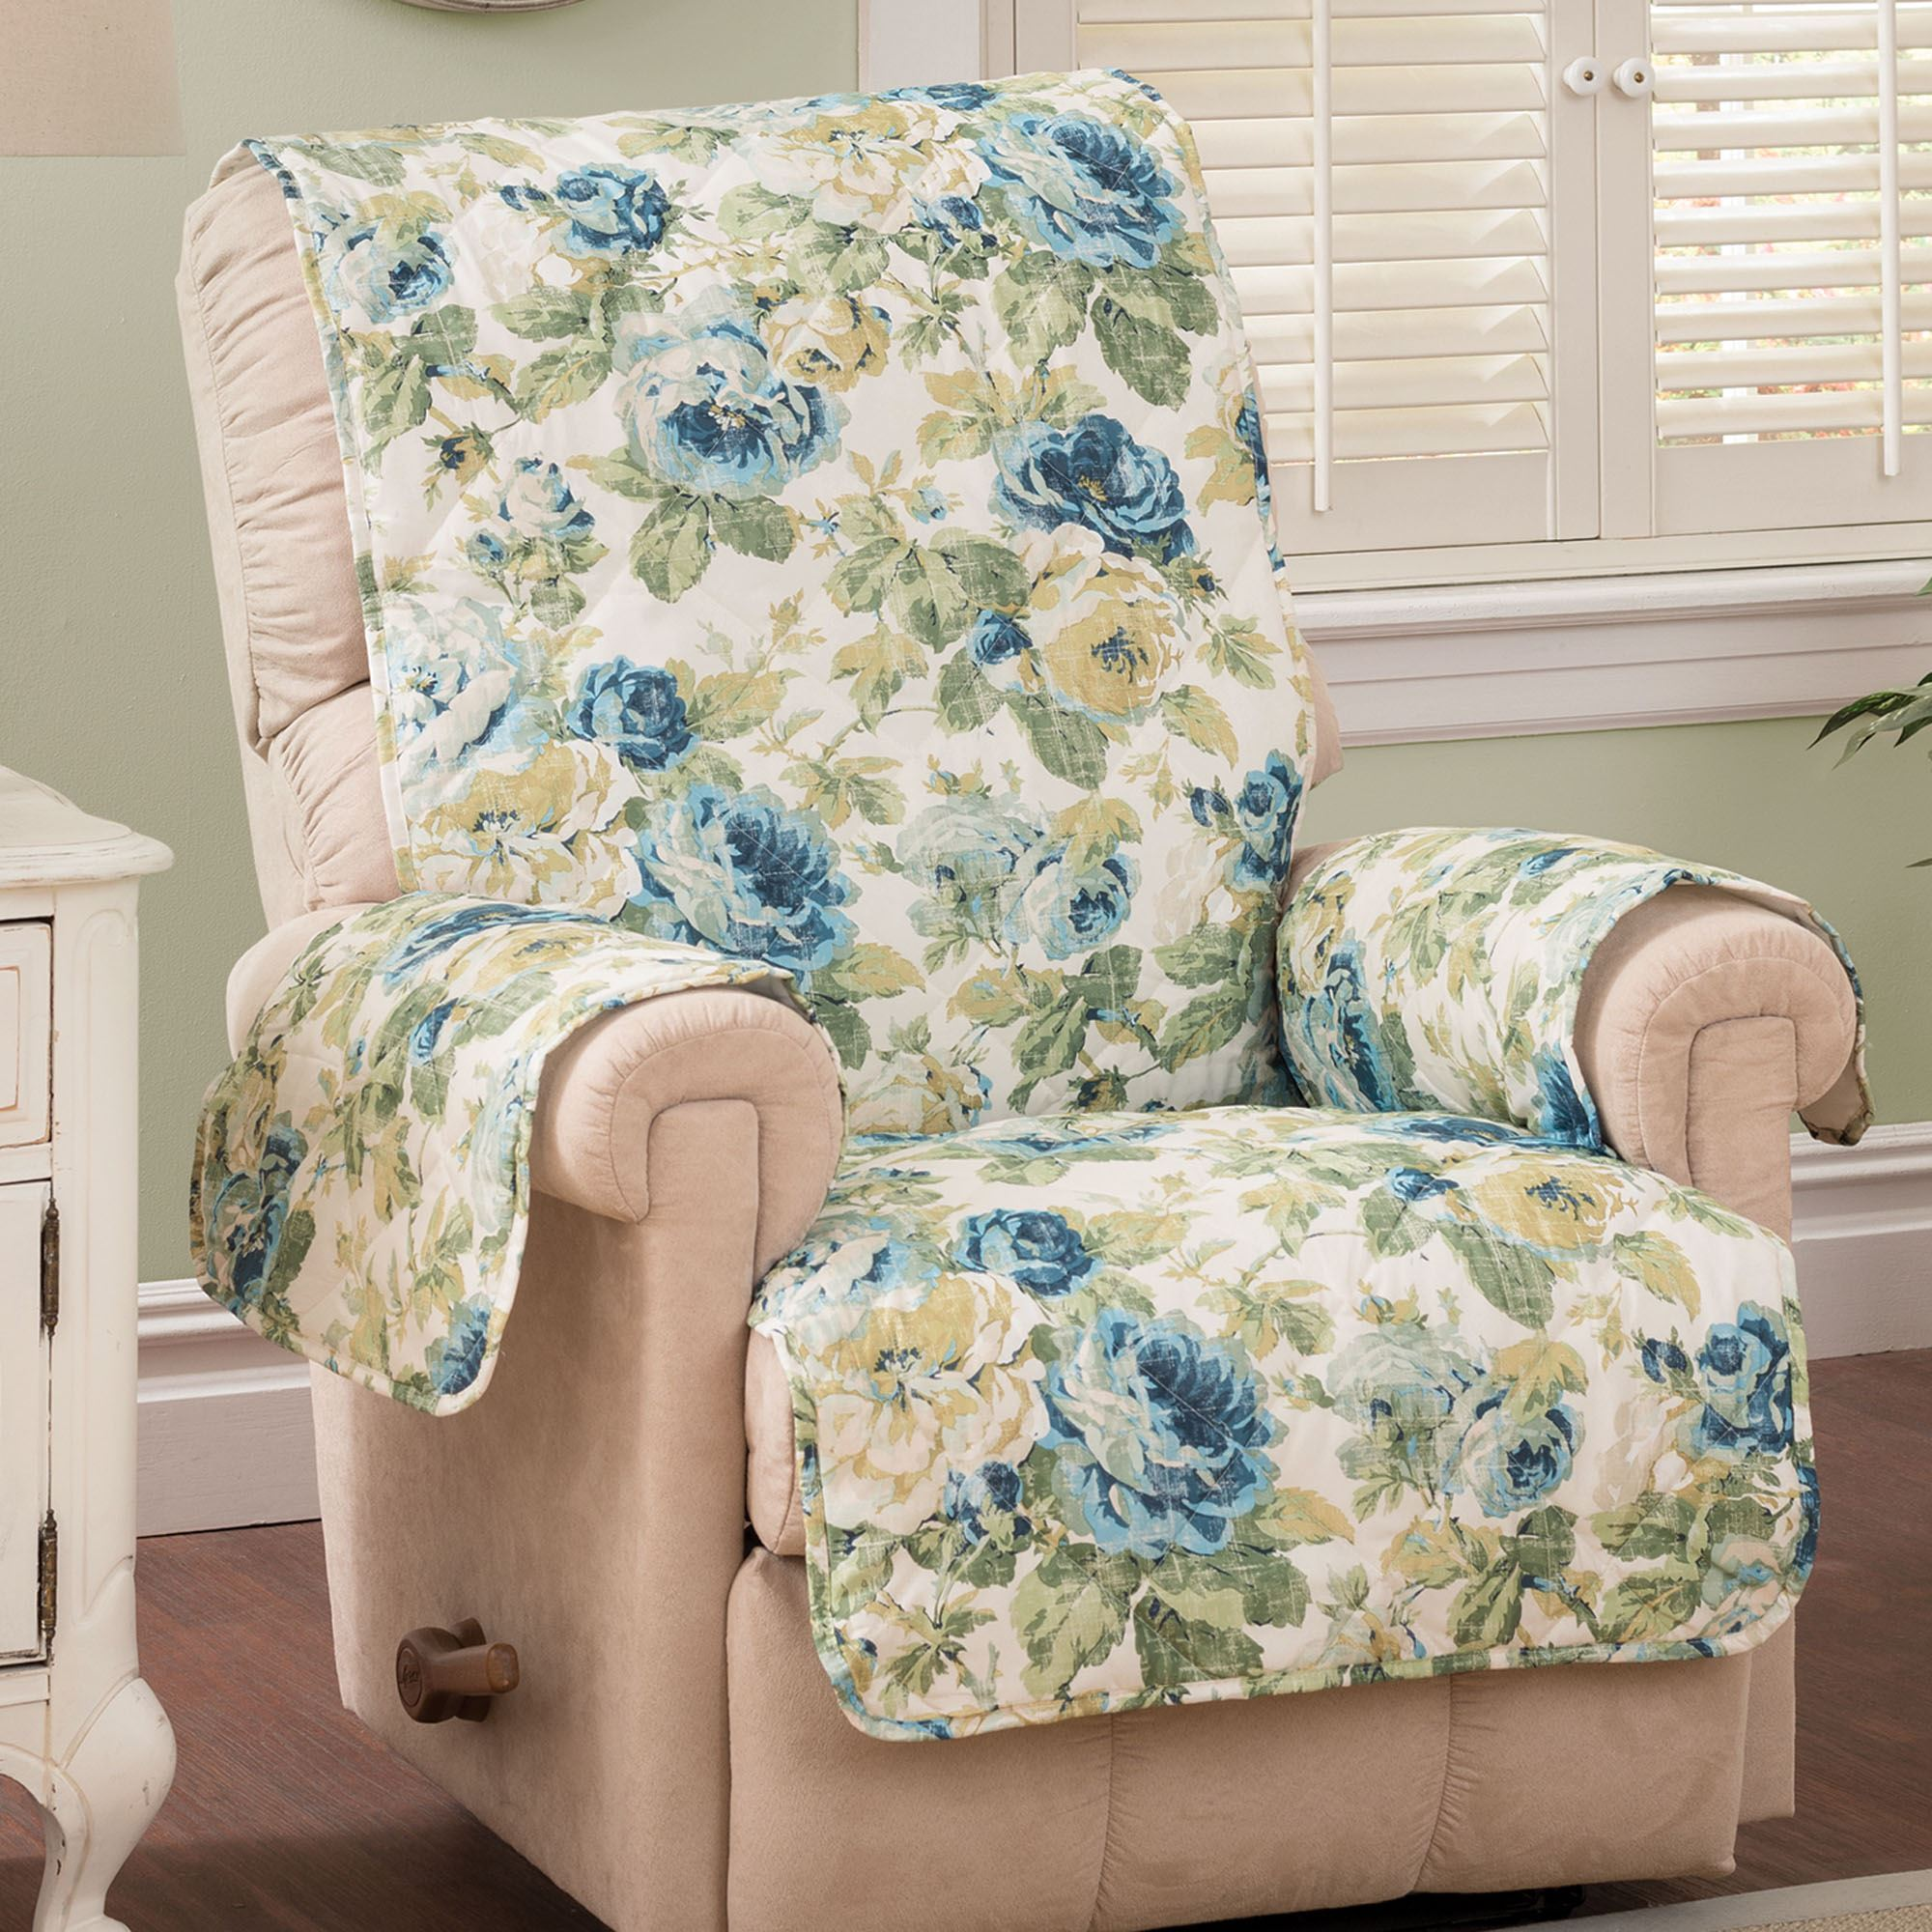 English Floral Sky Blue Quilted Furniture Protectors : quilted furniture protectors - Adamdwight.com